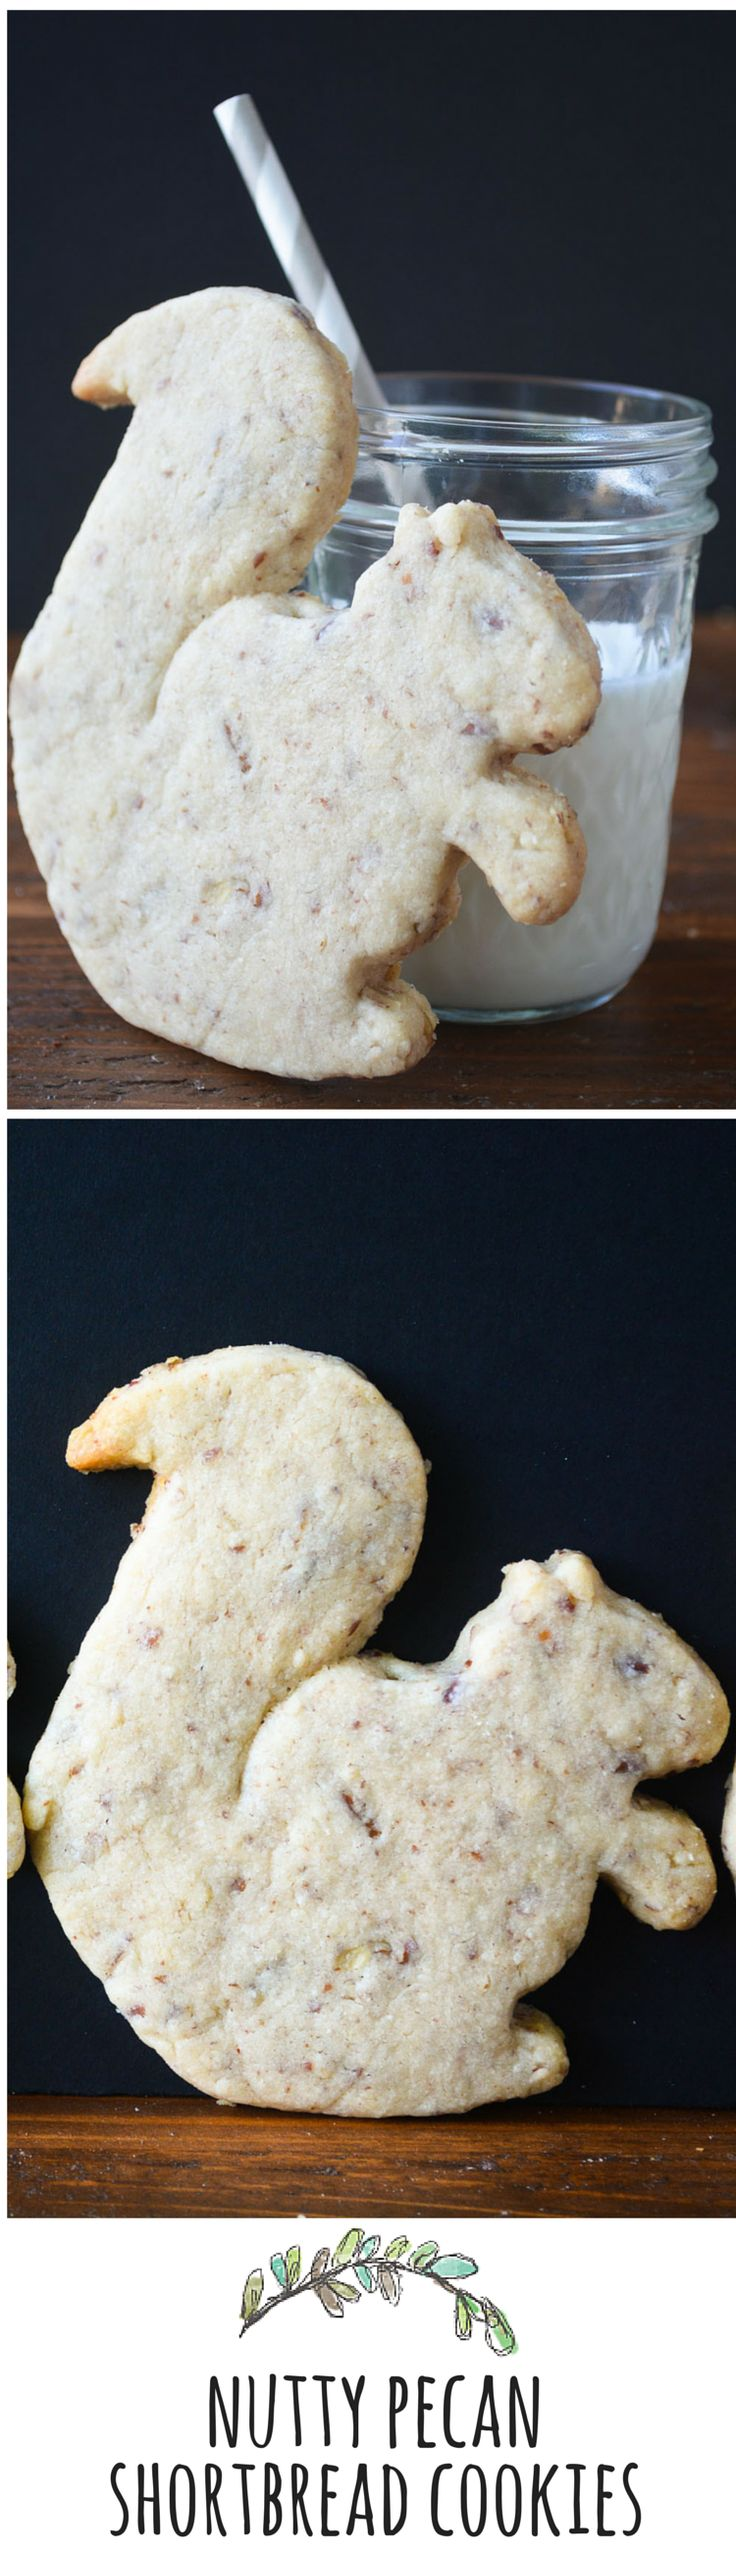 1000+ images about Food. on Pinterest | Meals on a budget, Dinner and ...